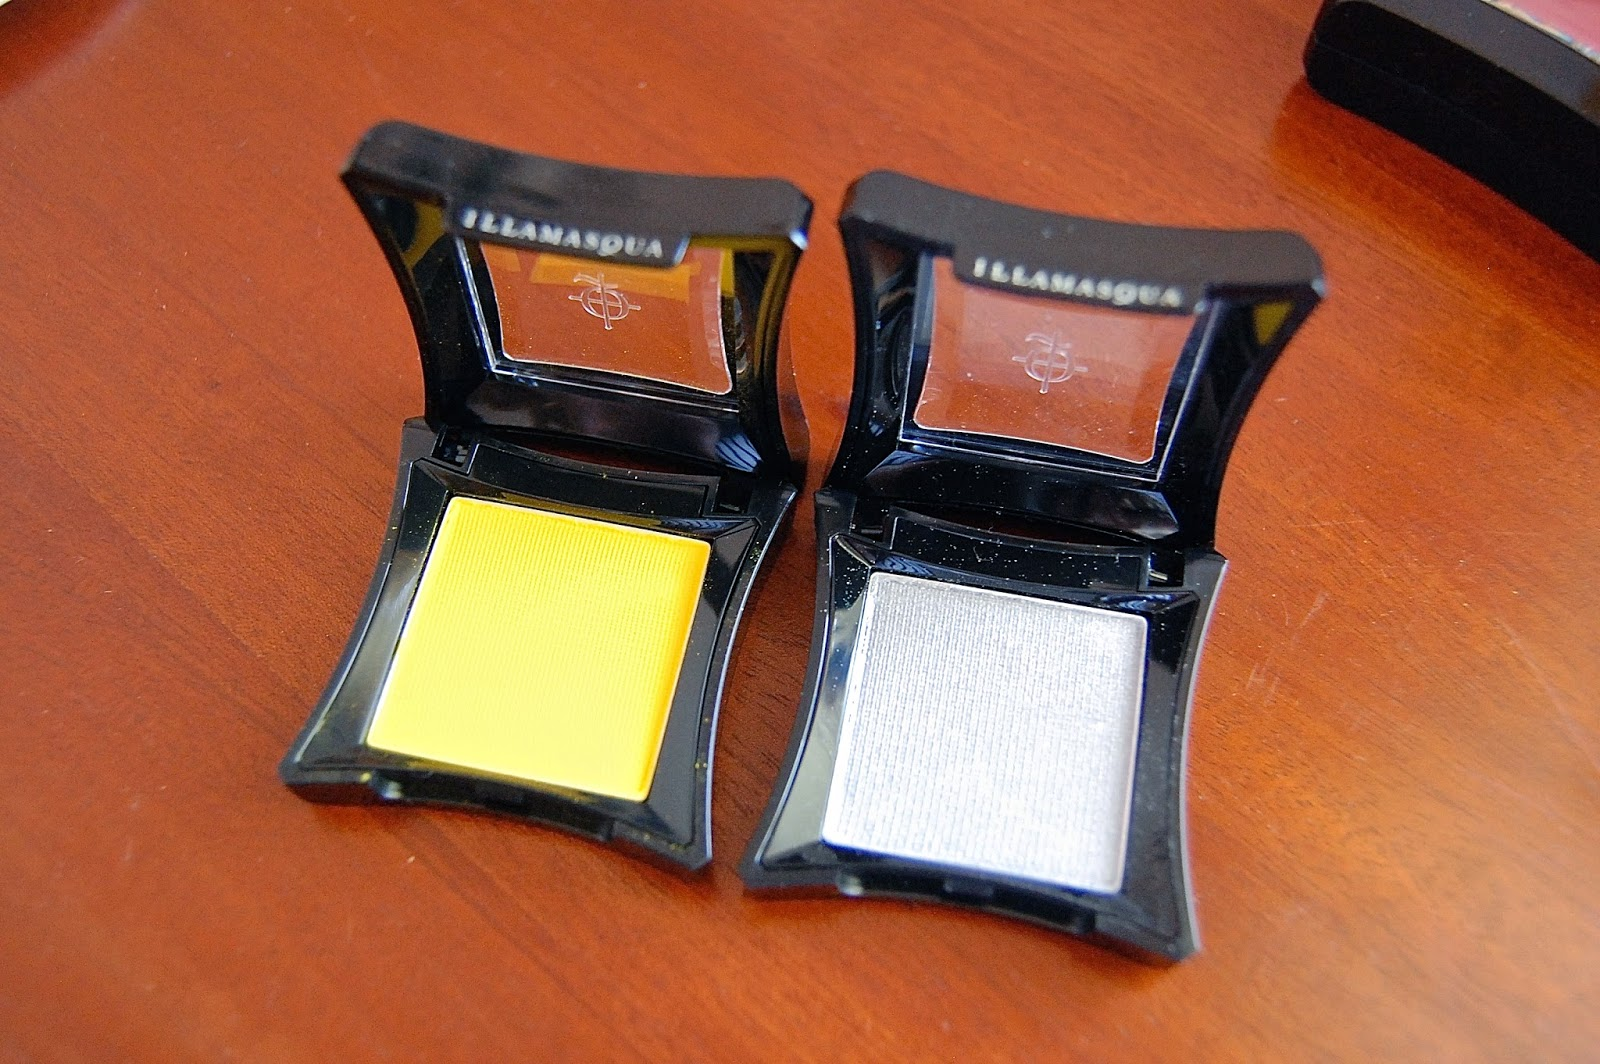 illamasqua, eyeshadow, blush, multi facets, bbloggers, beauty, make up, review